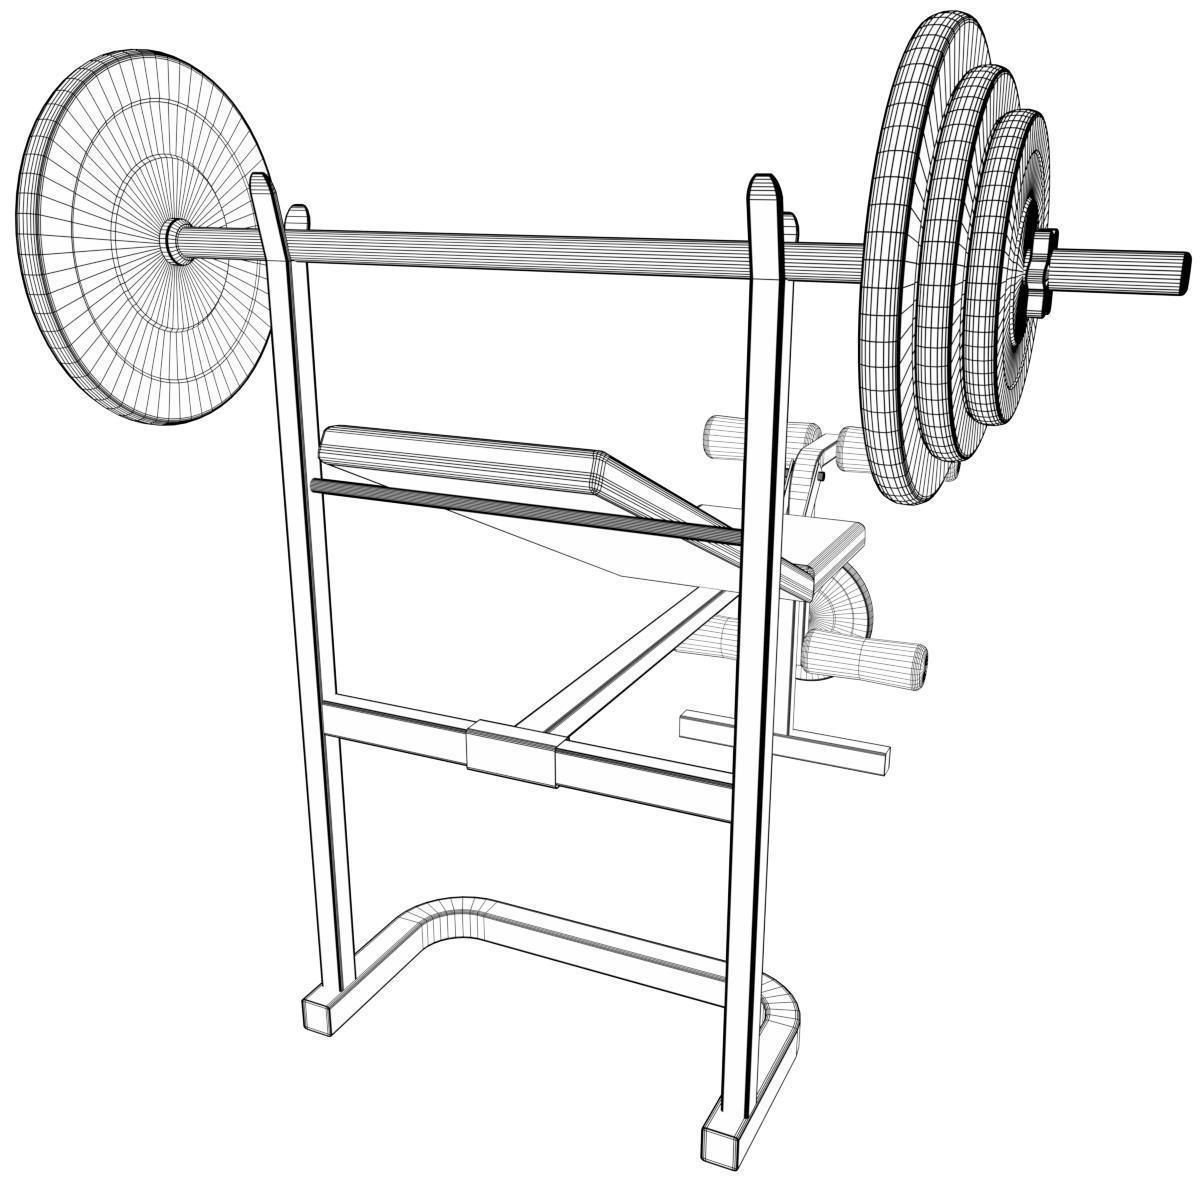 Gym Equipment Drawing at GetDrawings com   Free for personal